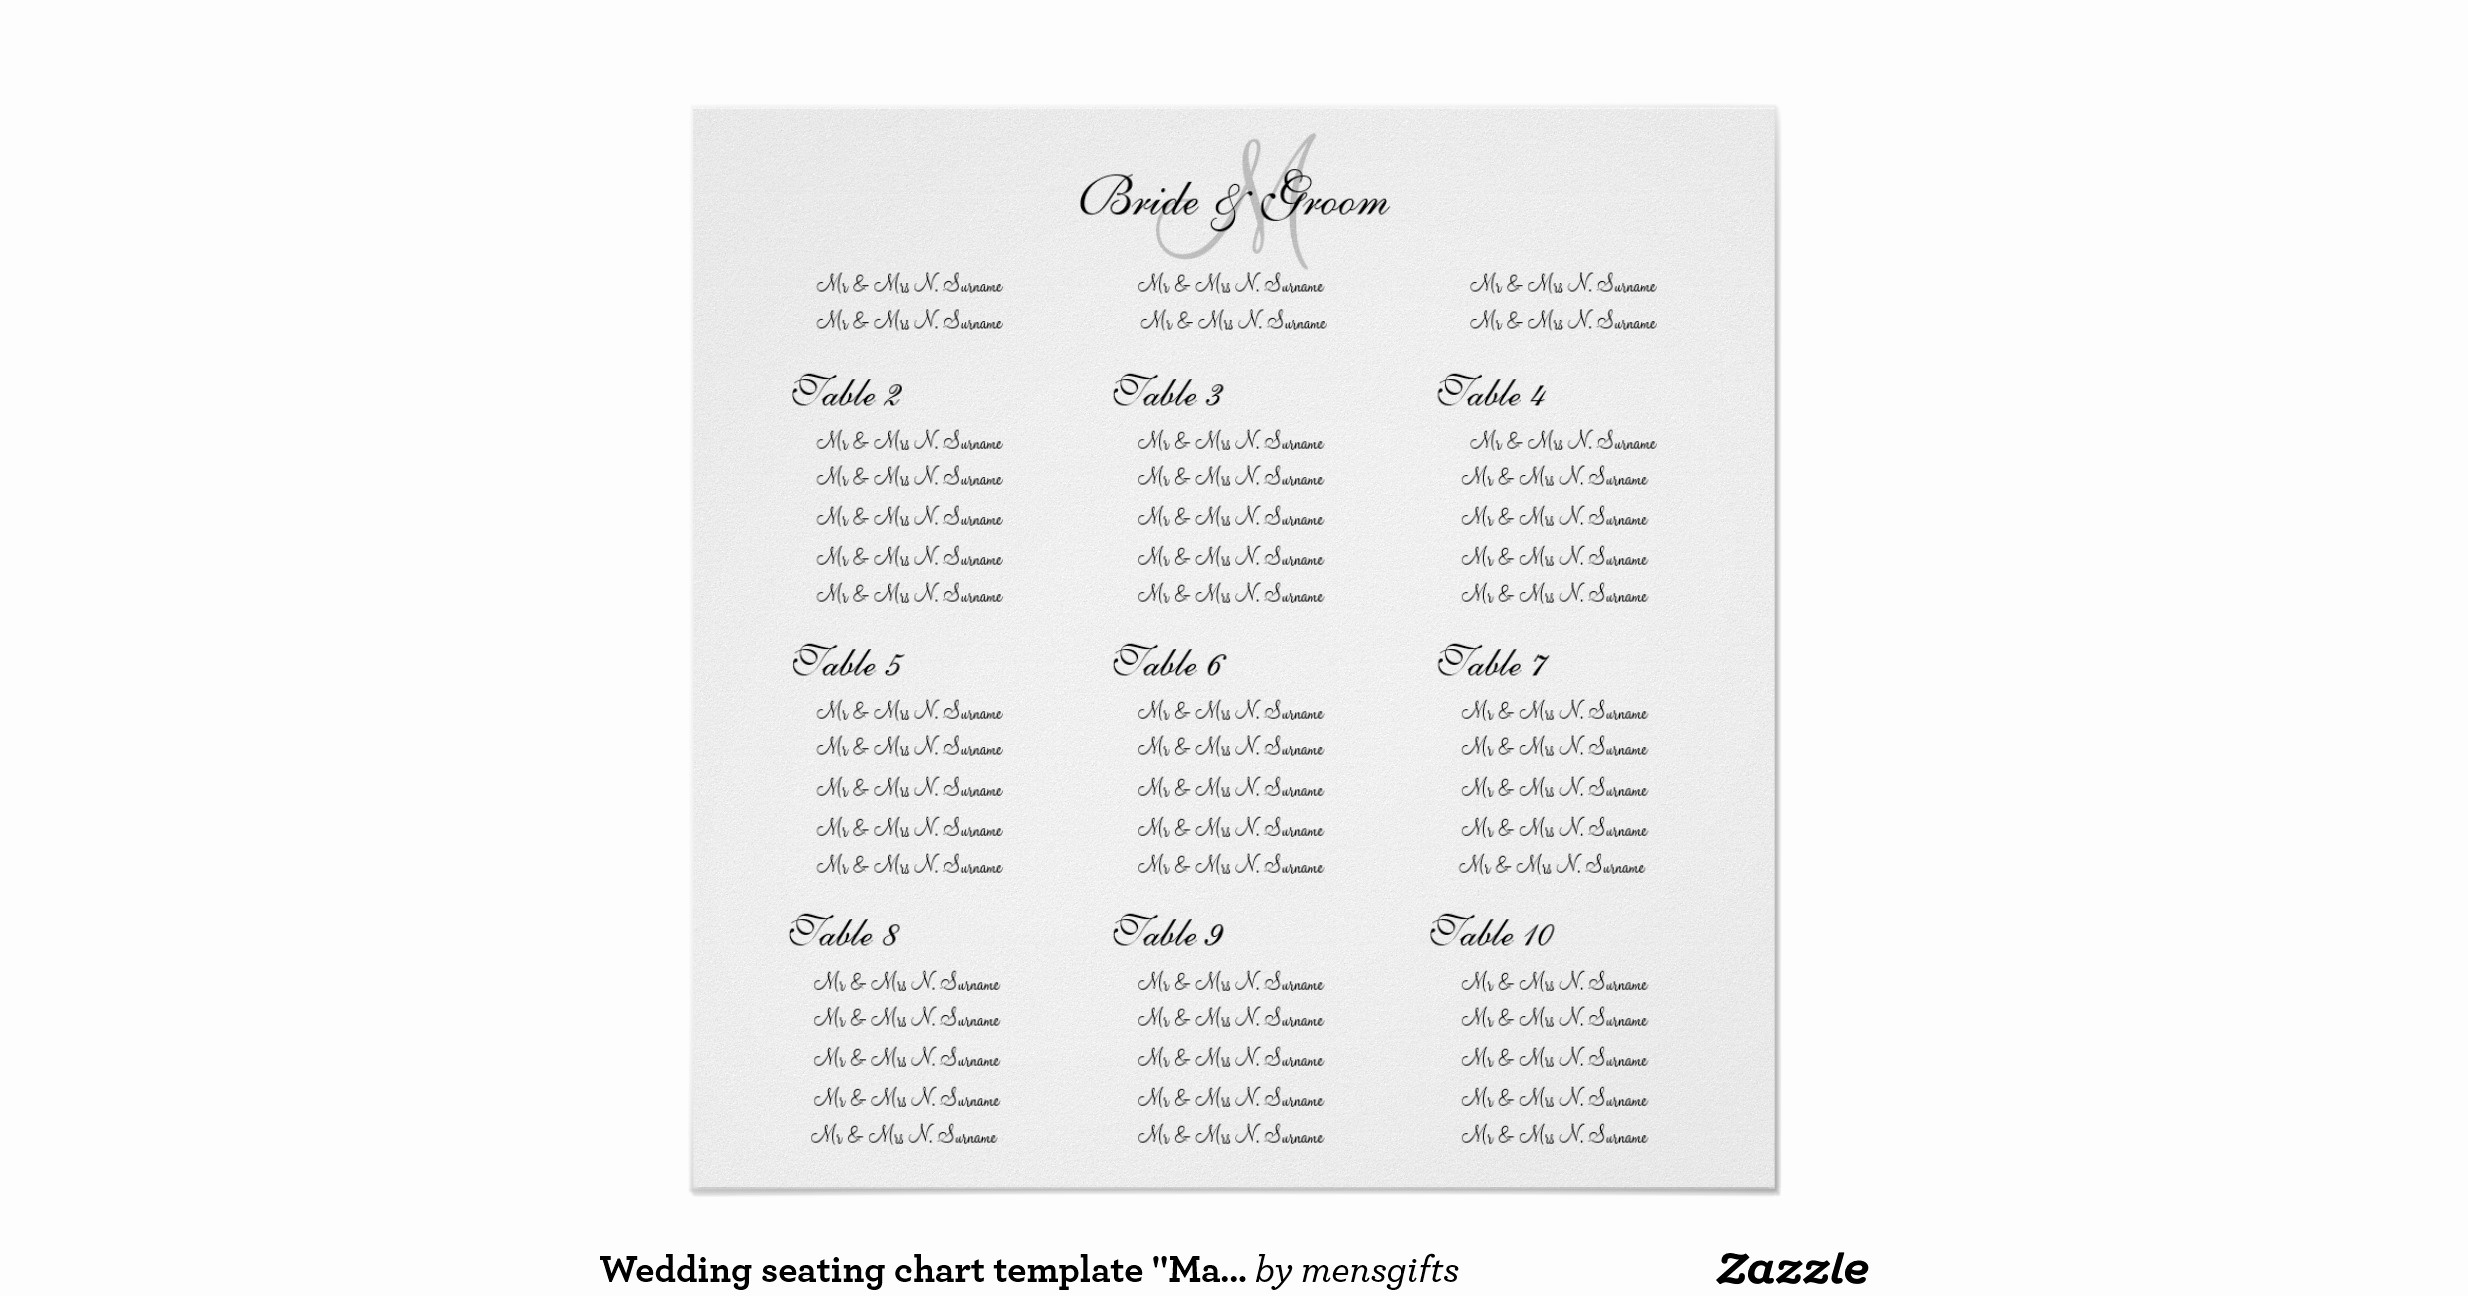 Create A Seating Chart Free Lovely Wedding Seating Chart Template Make Your Own Poster